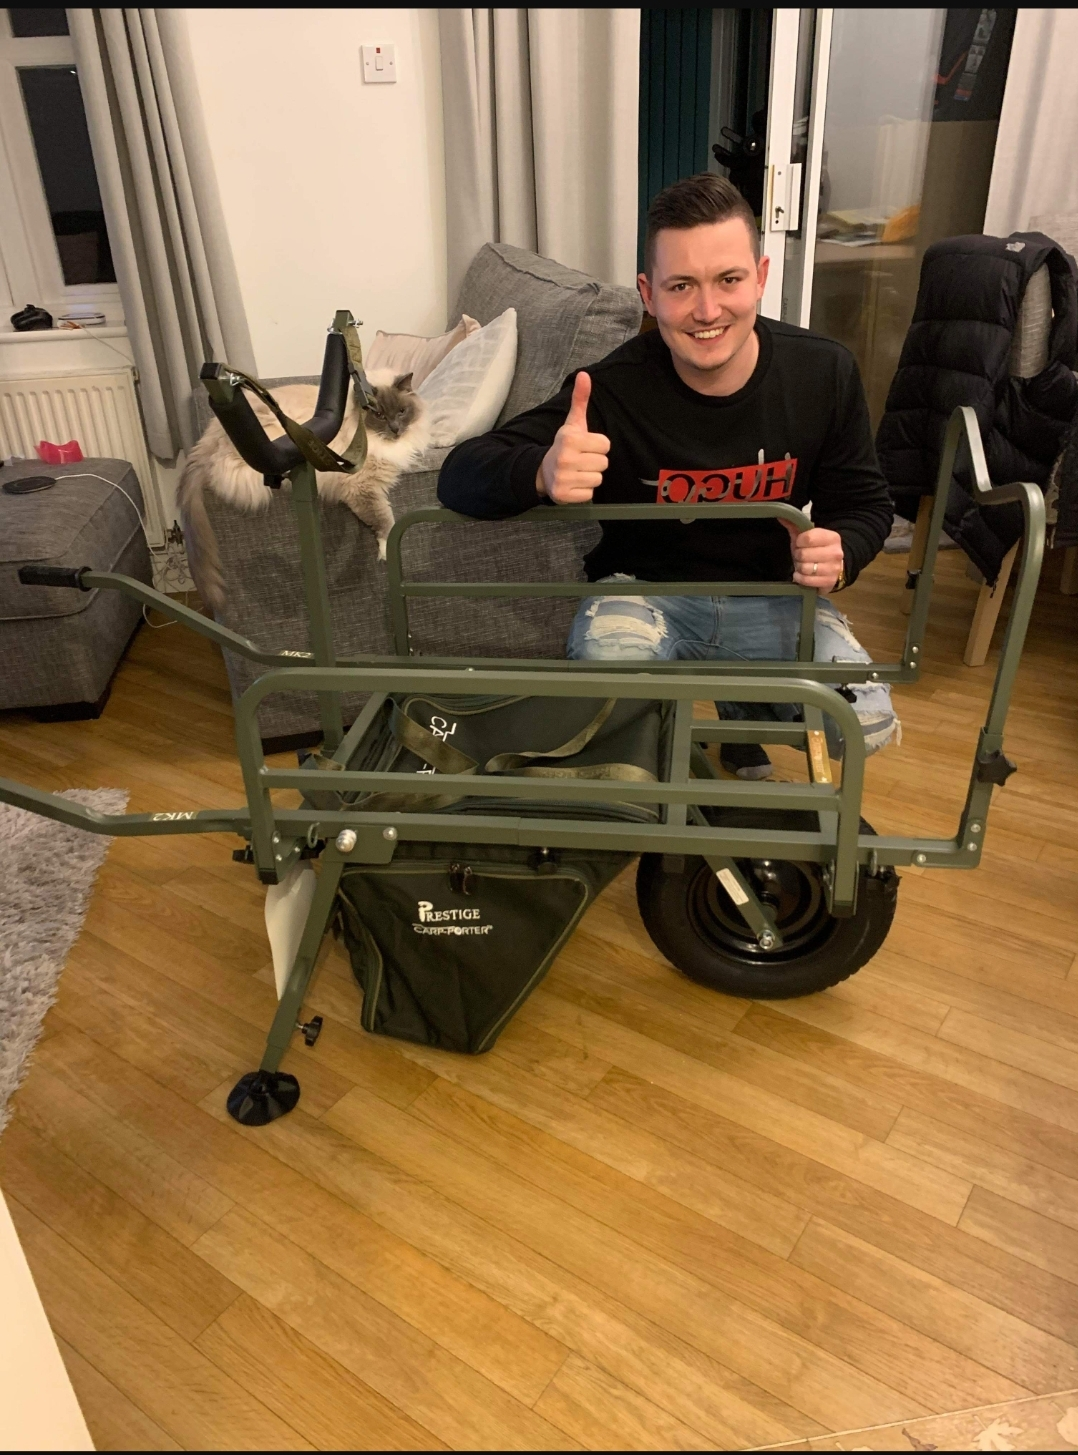 James Gibbs bags a Carp POrter BArrow